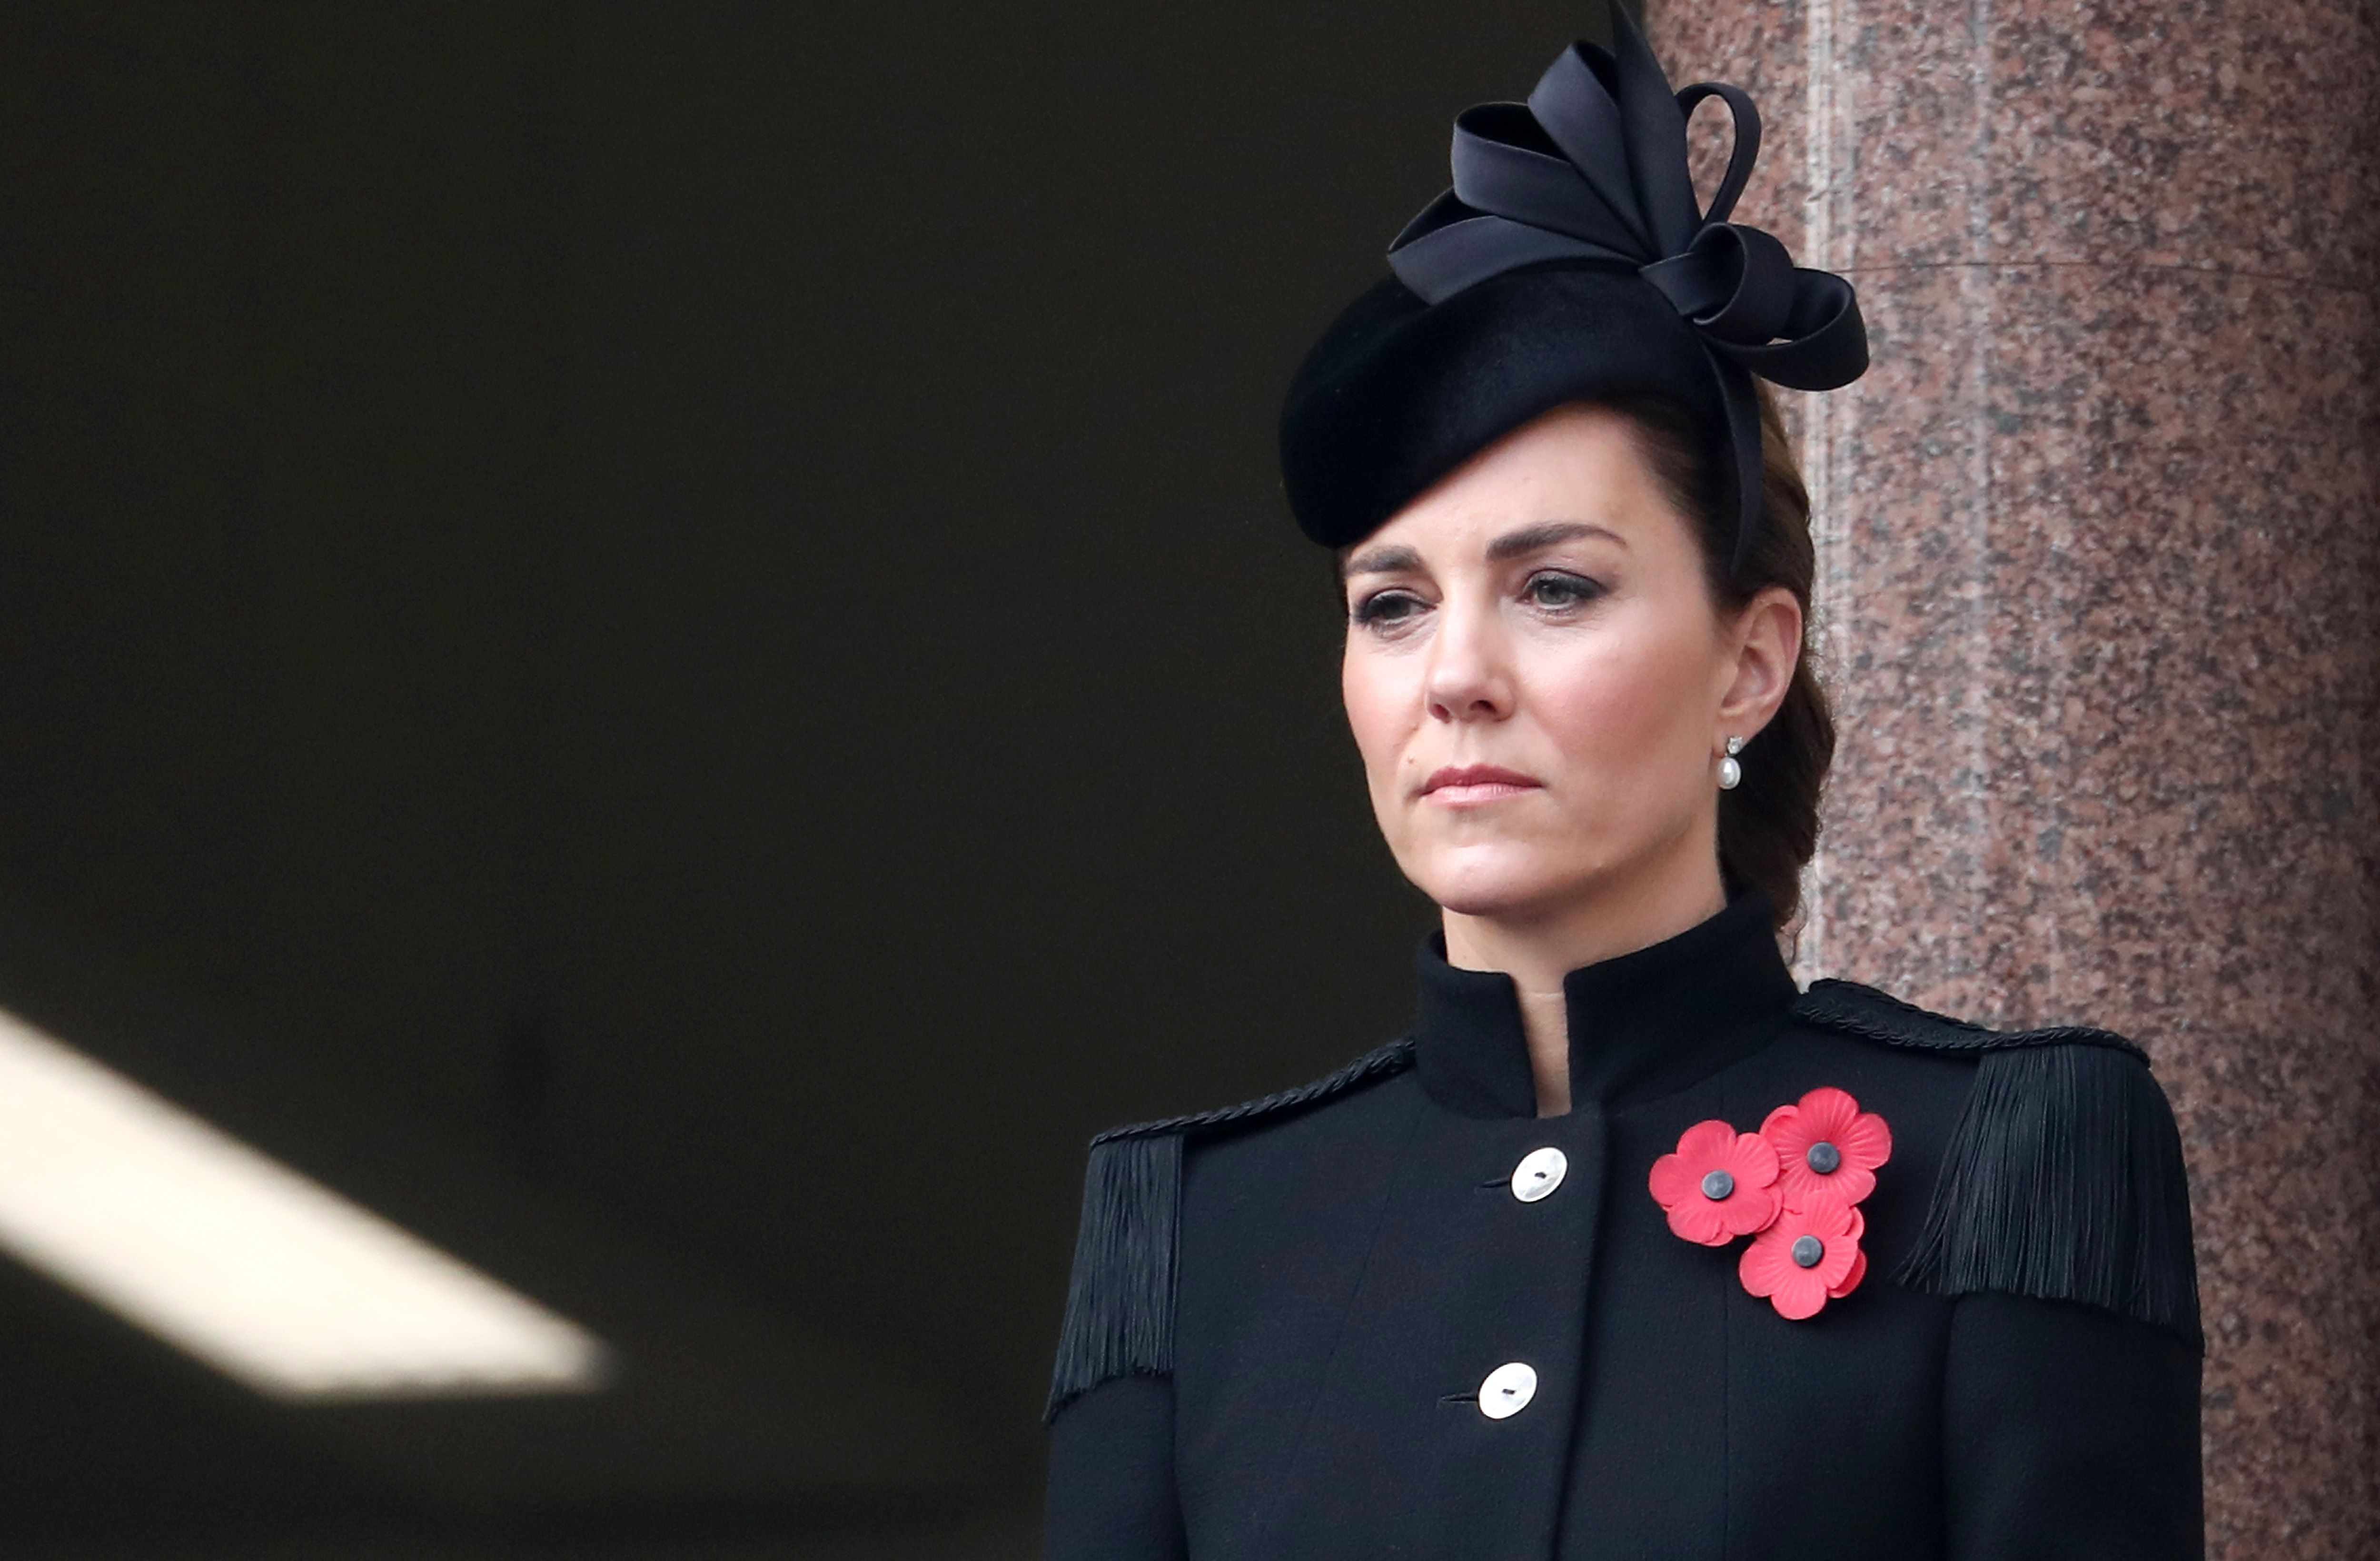 kate middleton attends remembrance day service to honor troops harper s bazaar